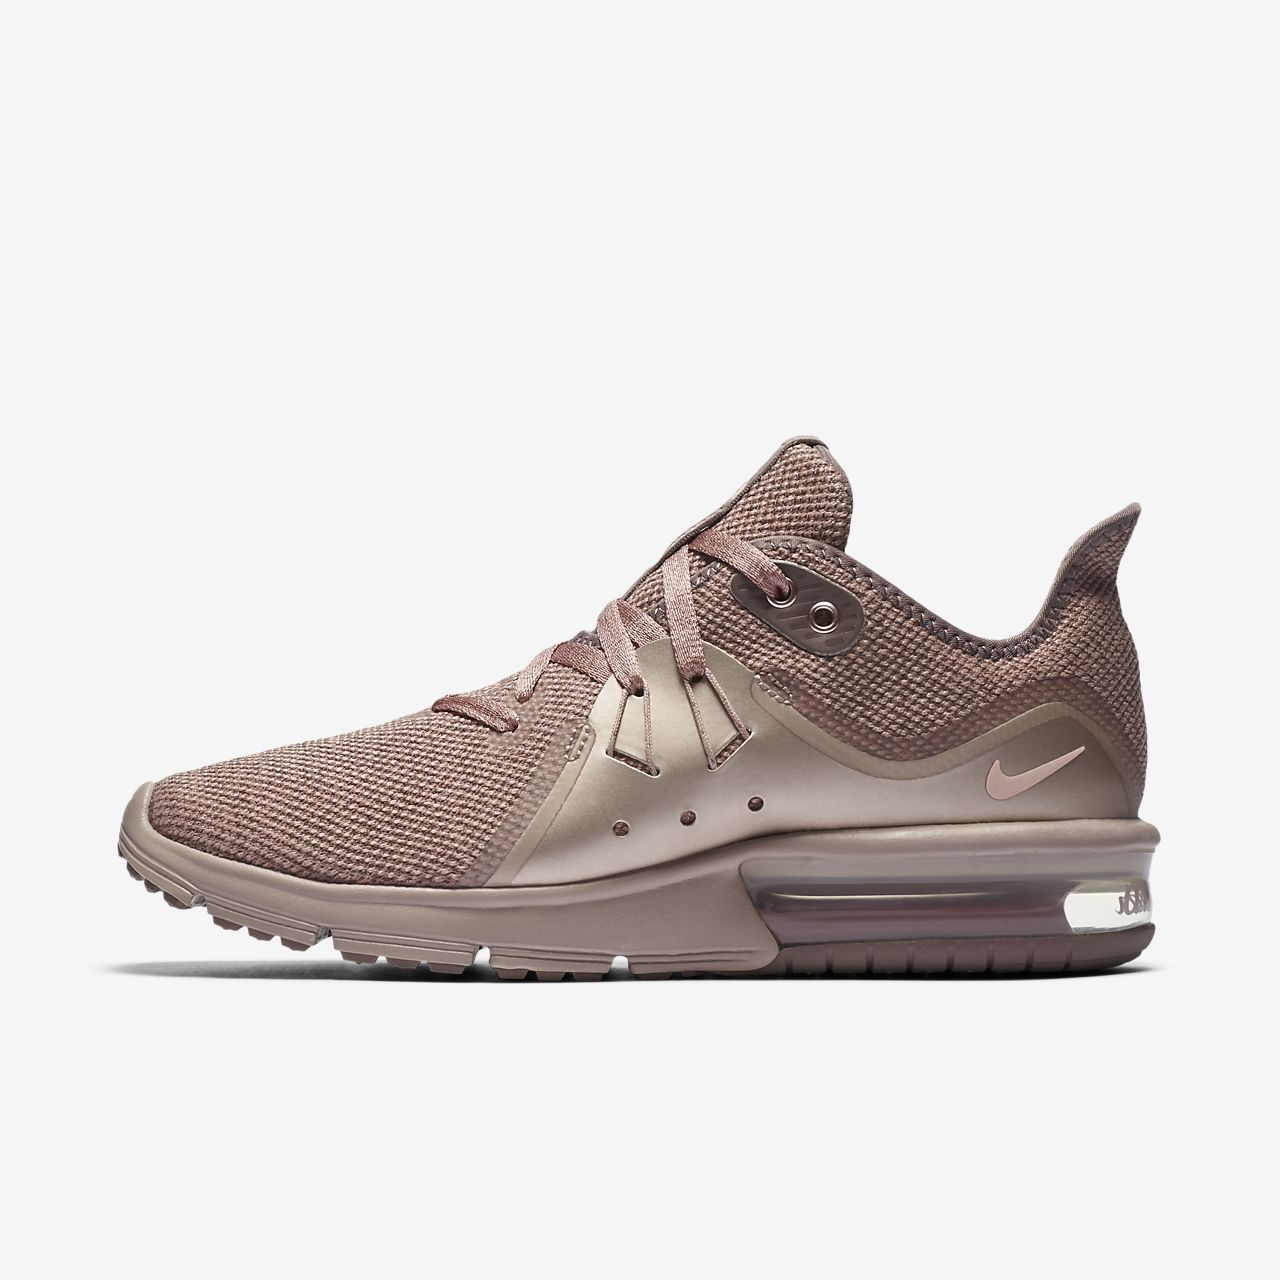 Nike Air Max Sequent beige